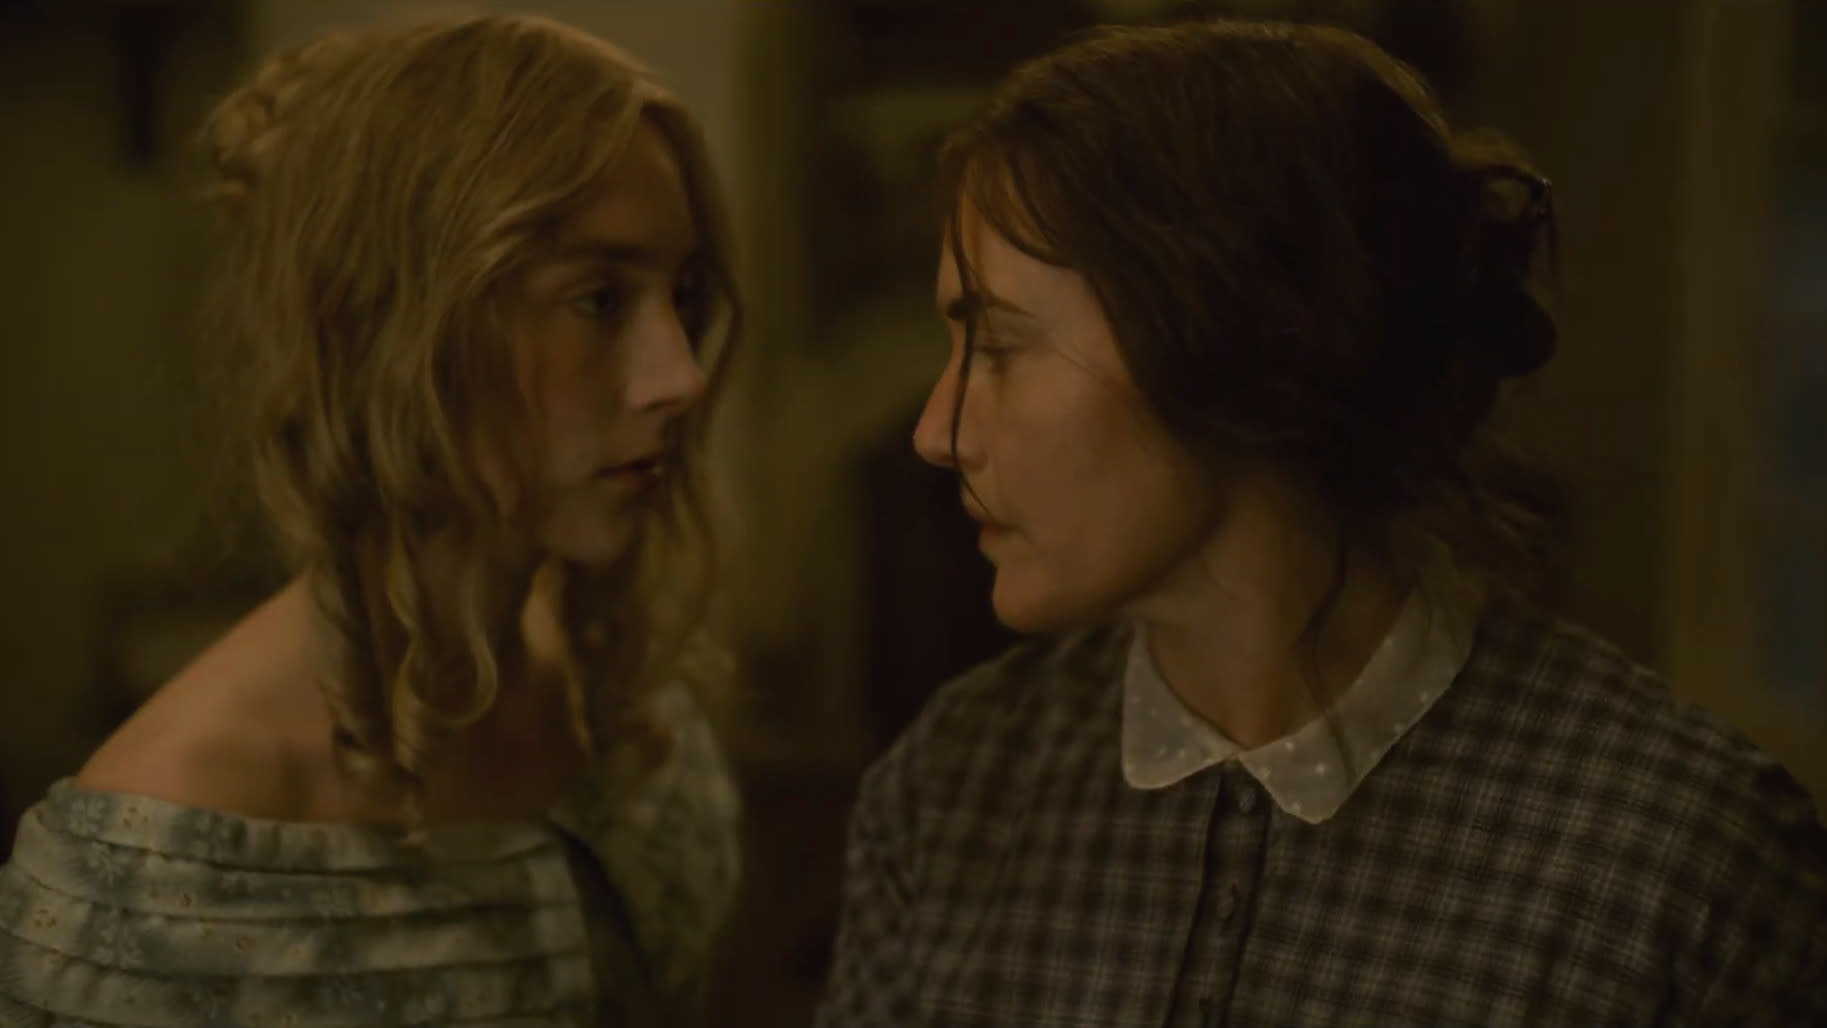 Saoirse Ronan and Kate Winslet on their new movie